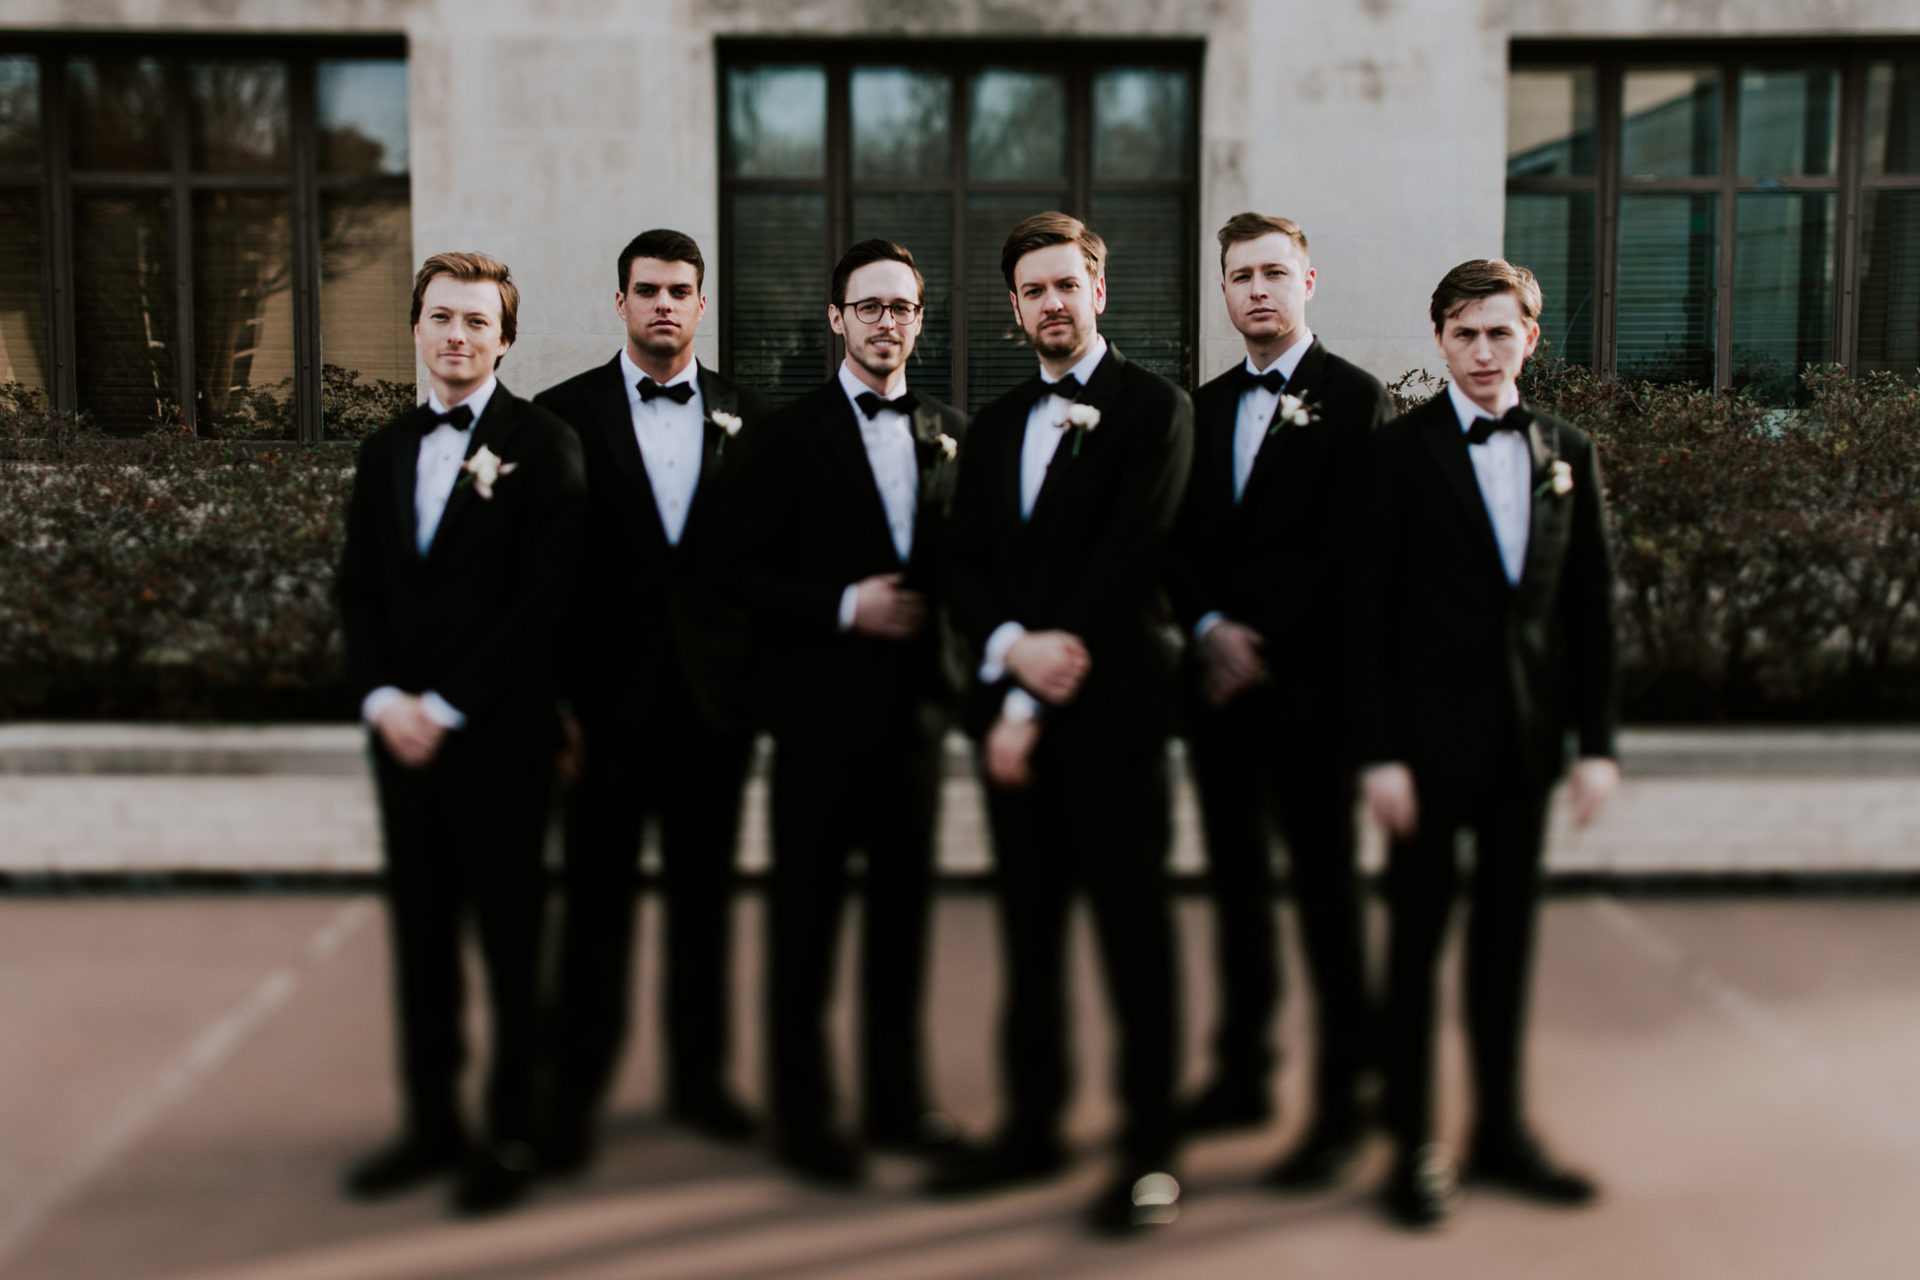 best-top-los-angeles-destination-wedding-photographer-hipster-modern-quirky-editorial-romantic-epic-58-moody-okc-gaylord-pickens-museum-groomsmen-fun-hall-of-fame